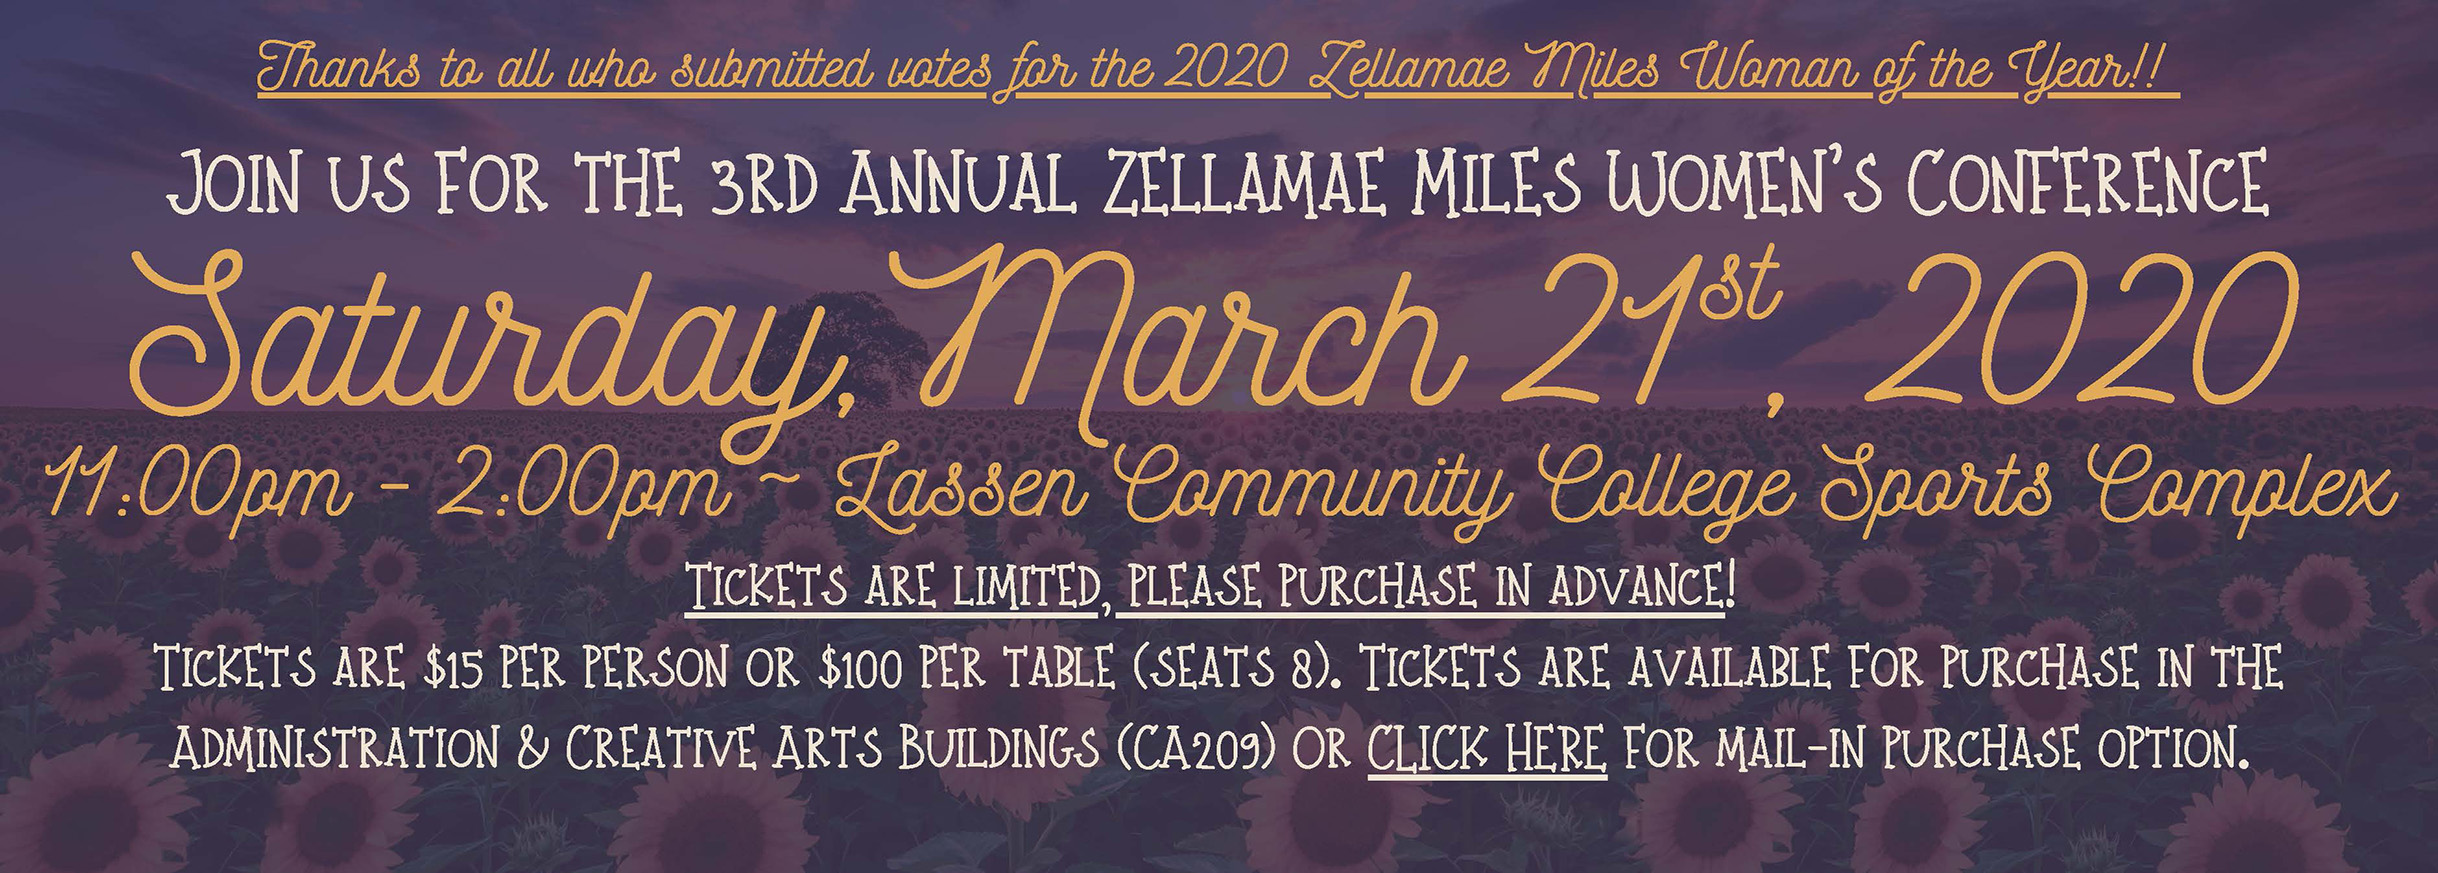 Zellamae Women's Conference